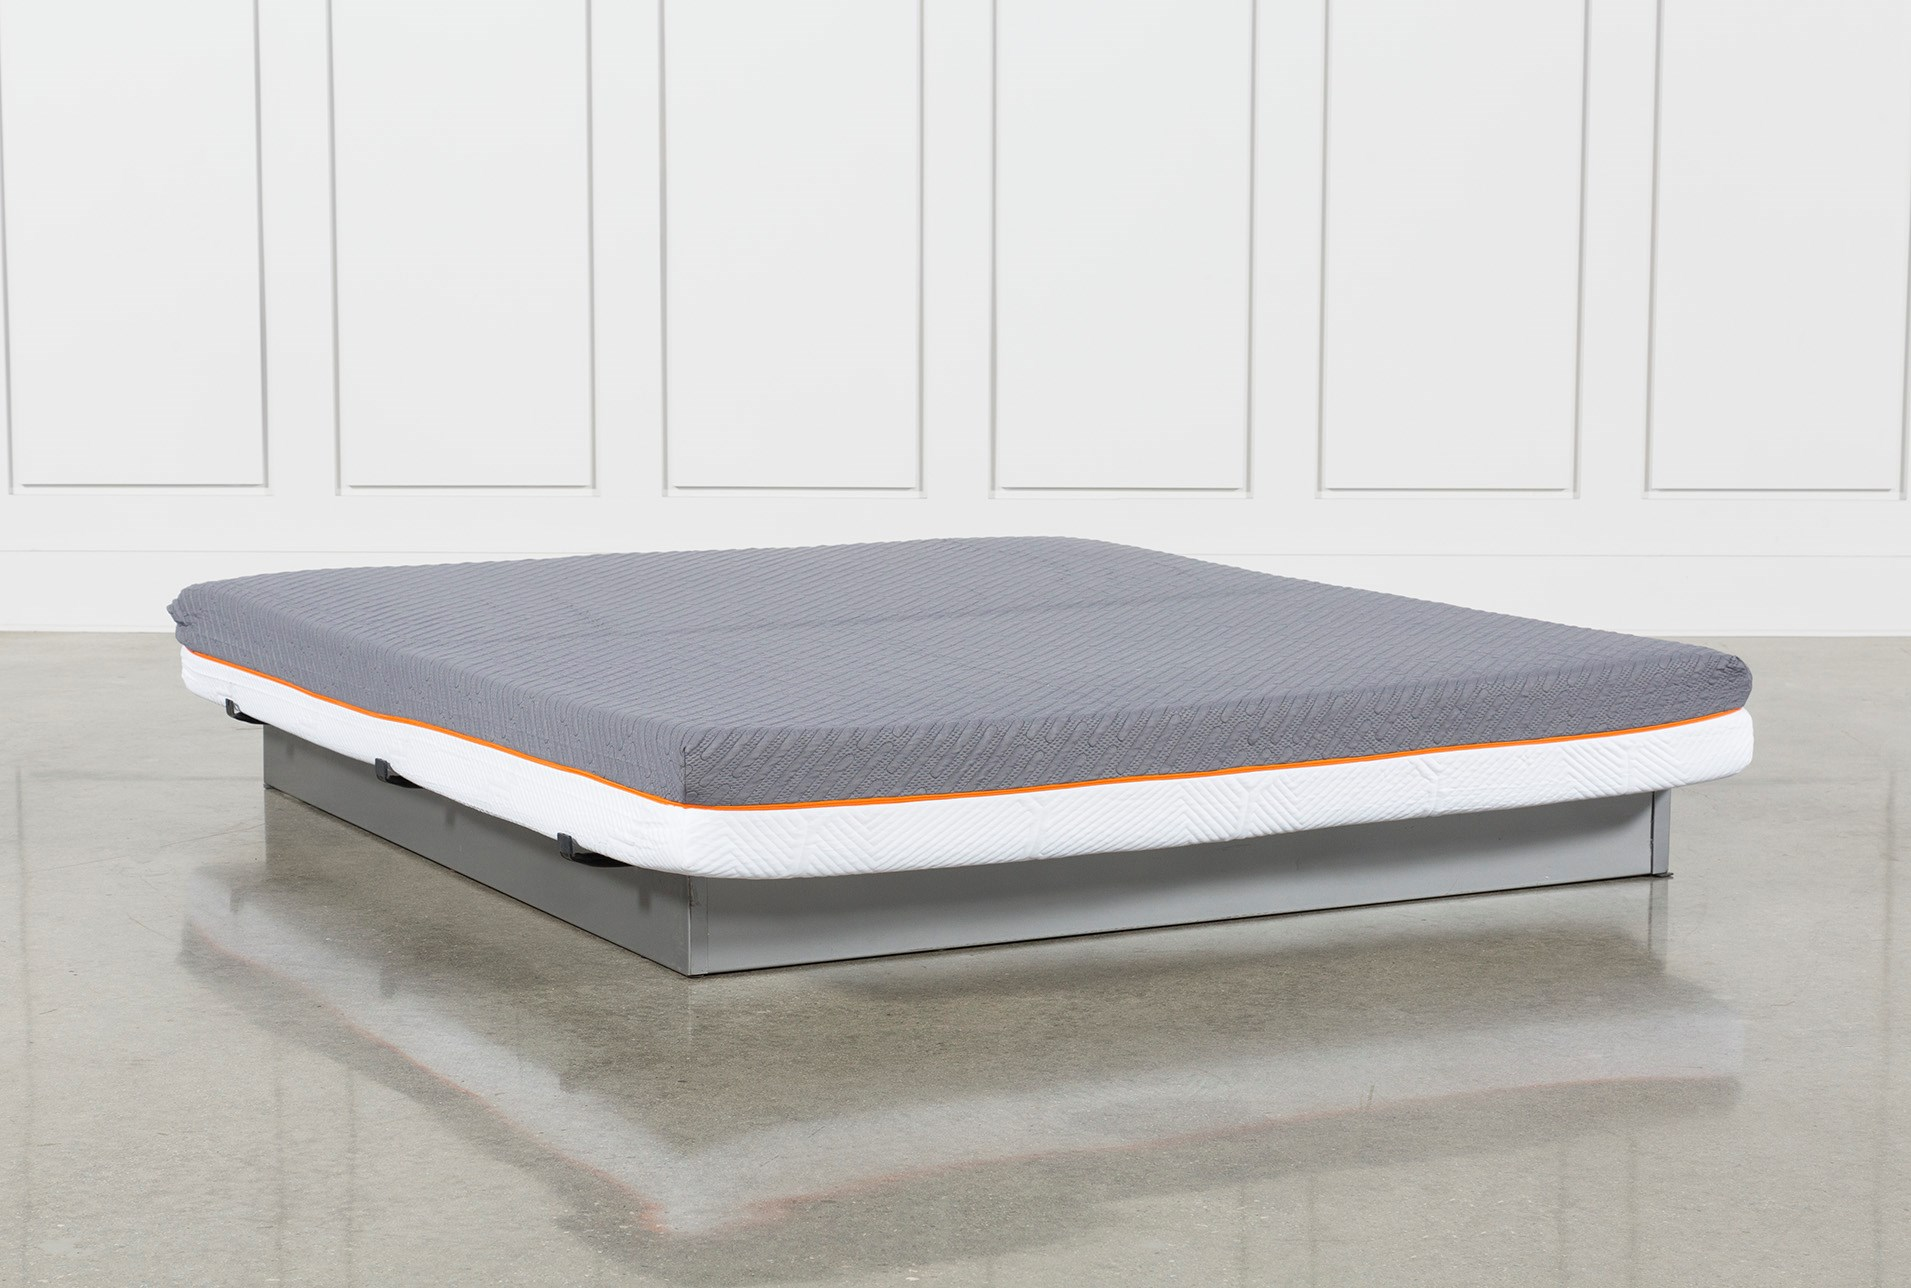 California King Mattress Intended Inch Flipable California King Mattress qty 1 Has Been Successfully Added To Your Cart Living Spaces